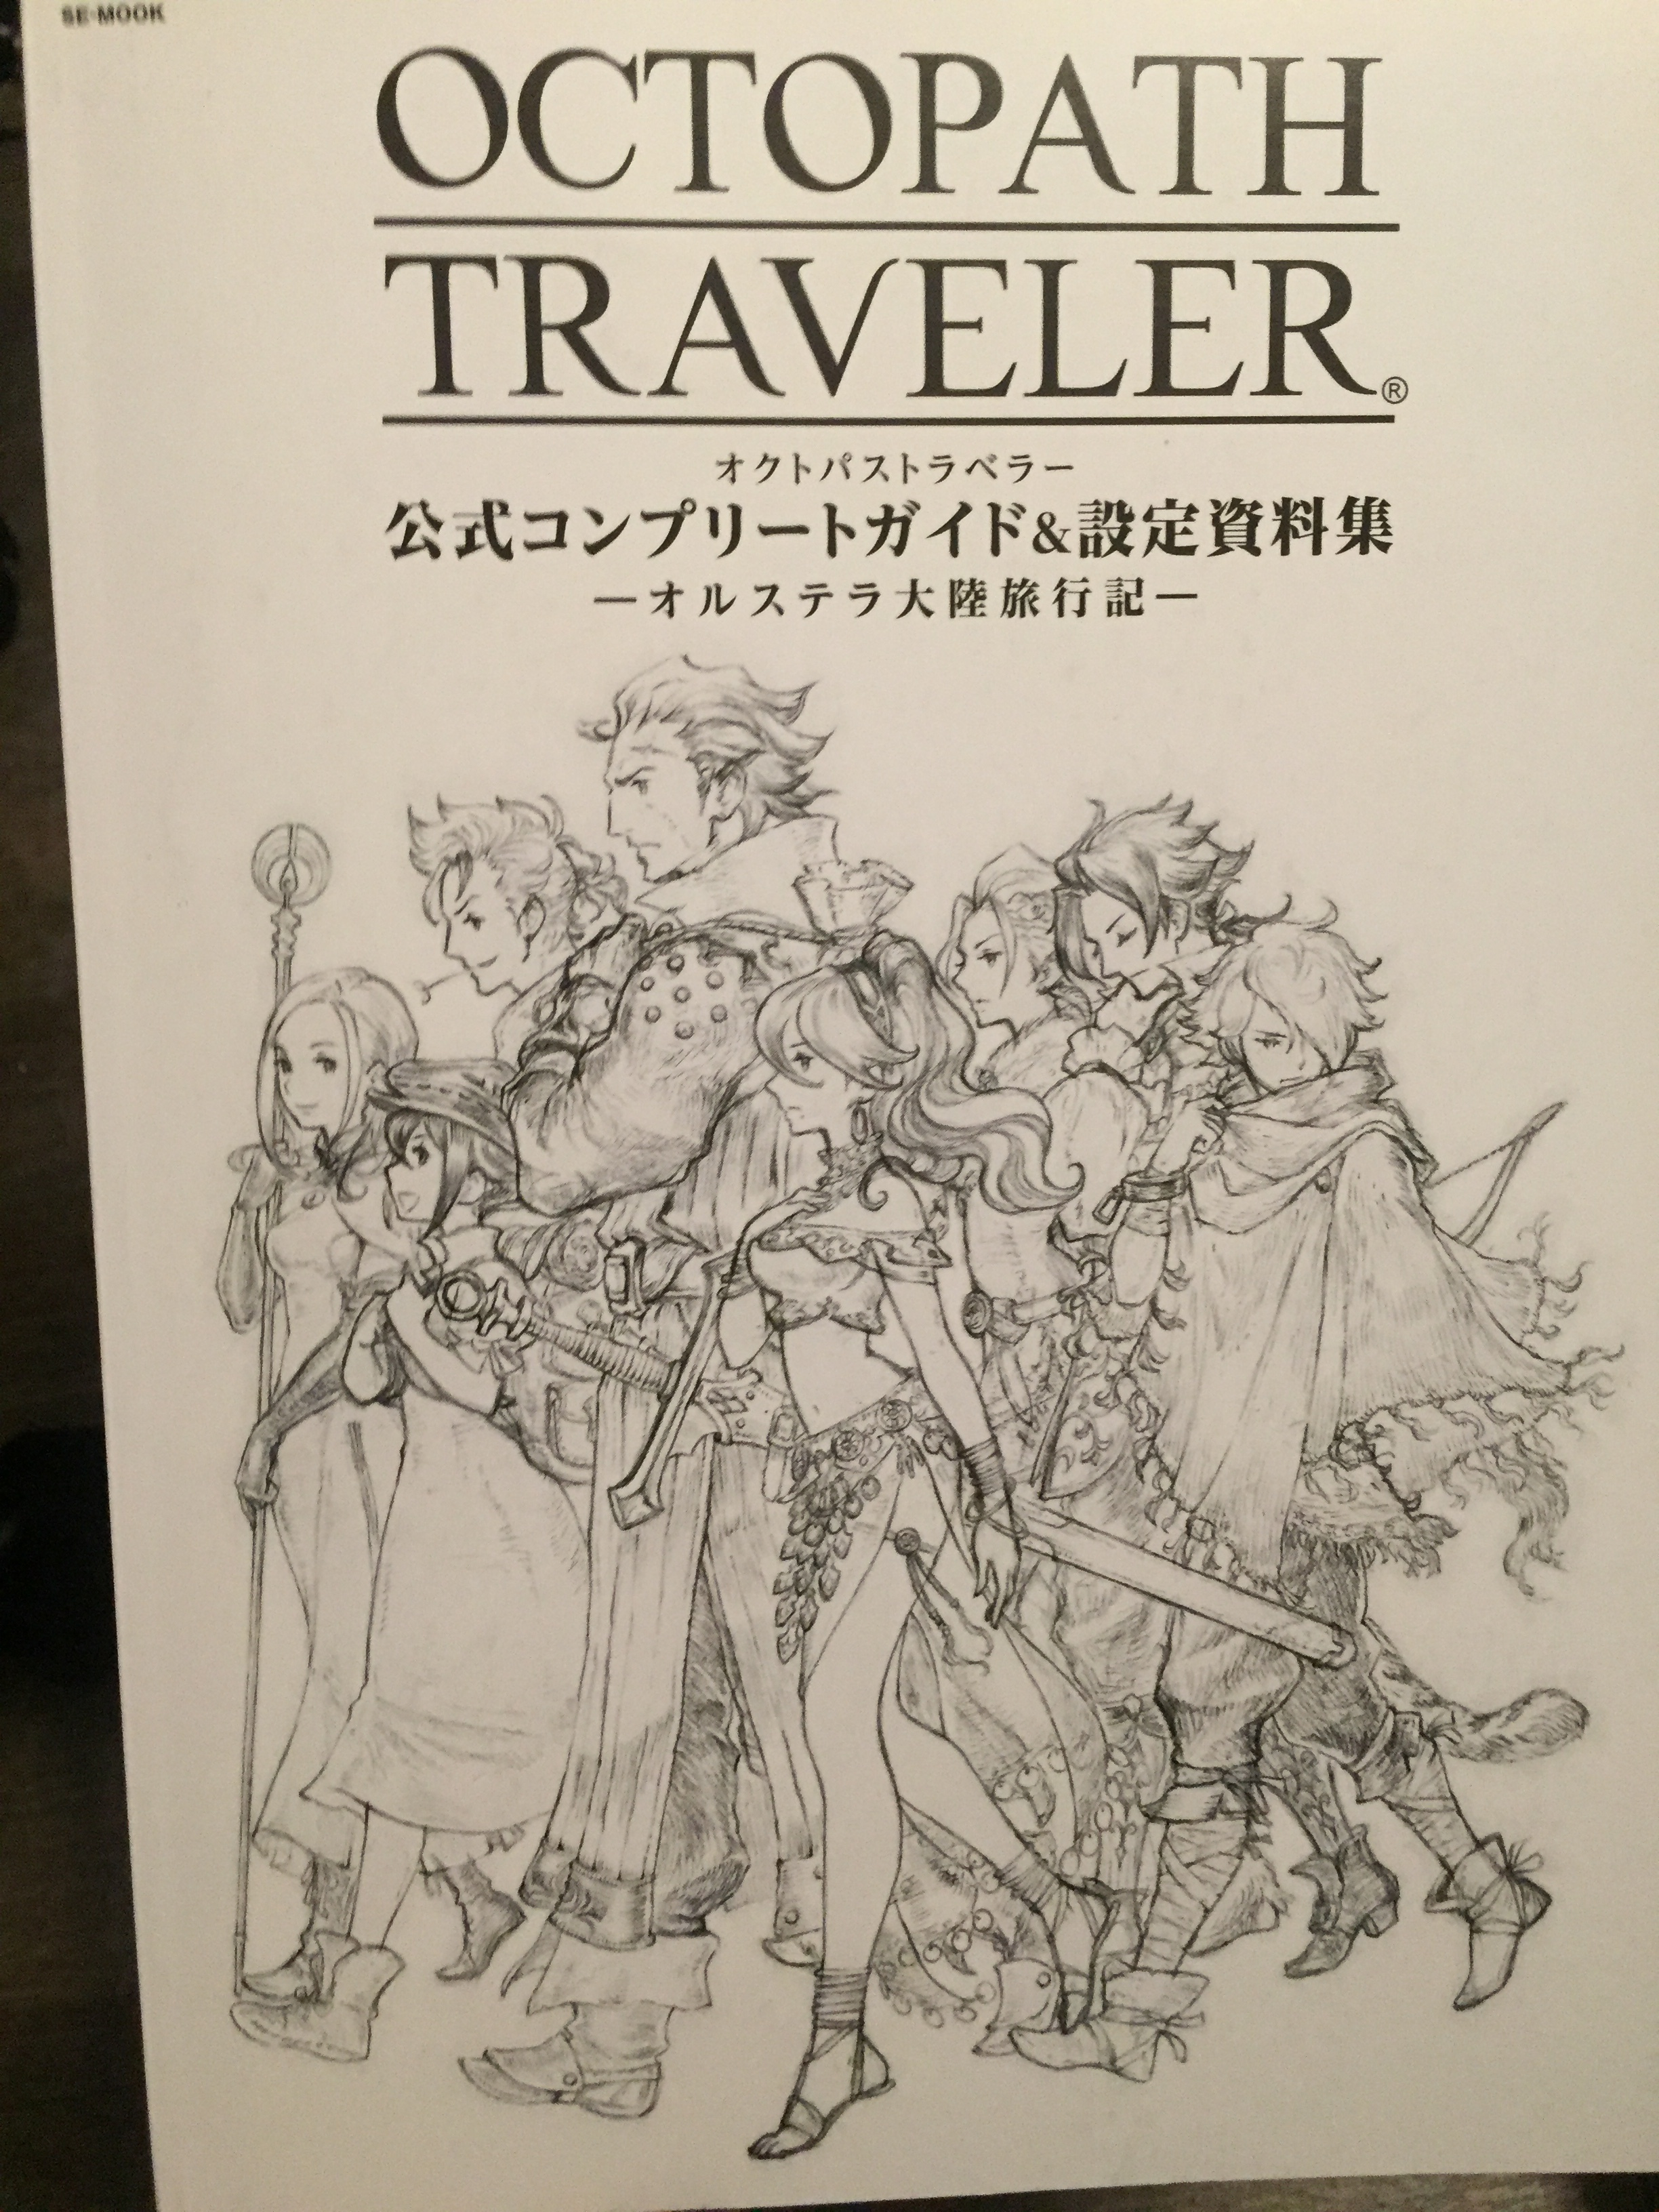 octopath traveler sketch cover guide.JPG